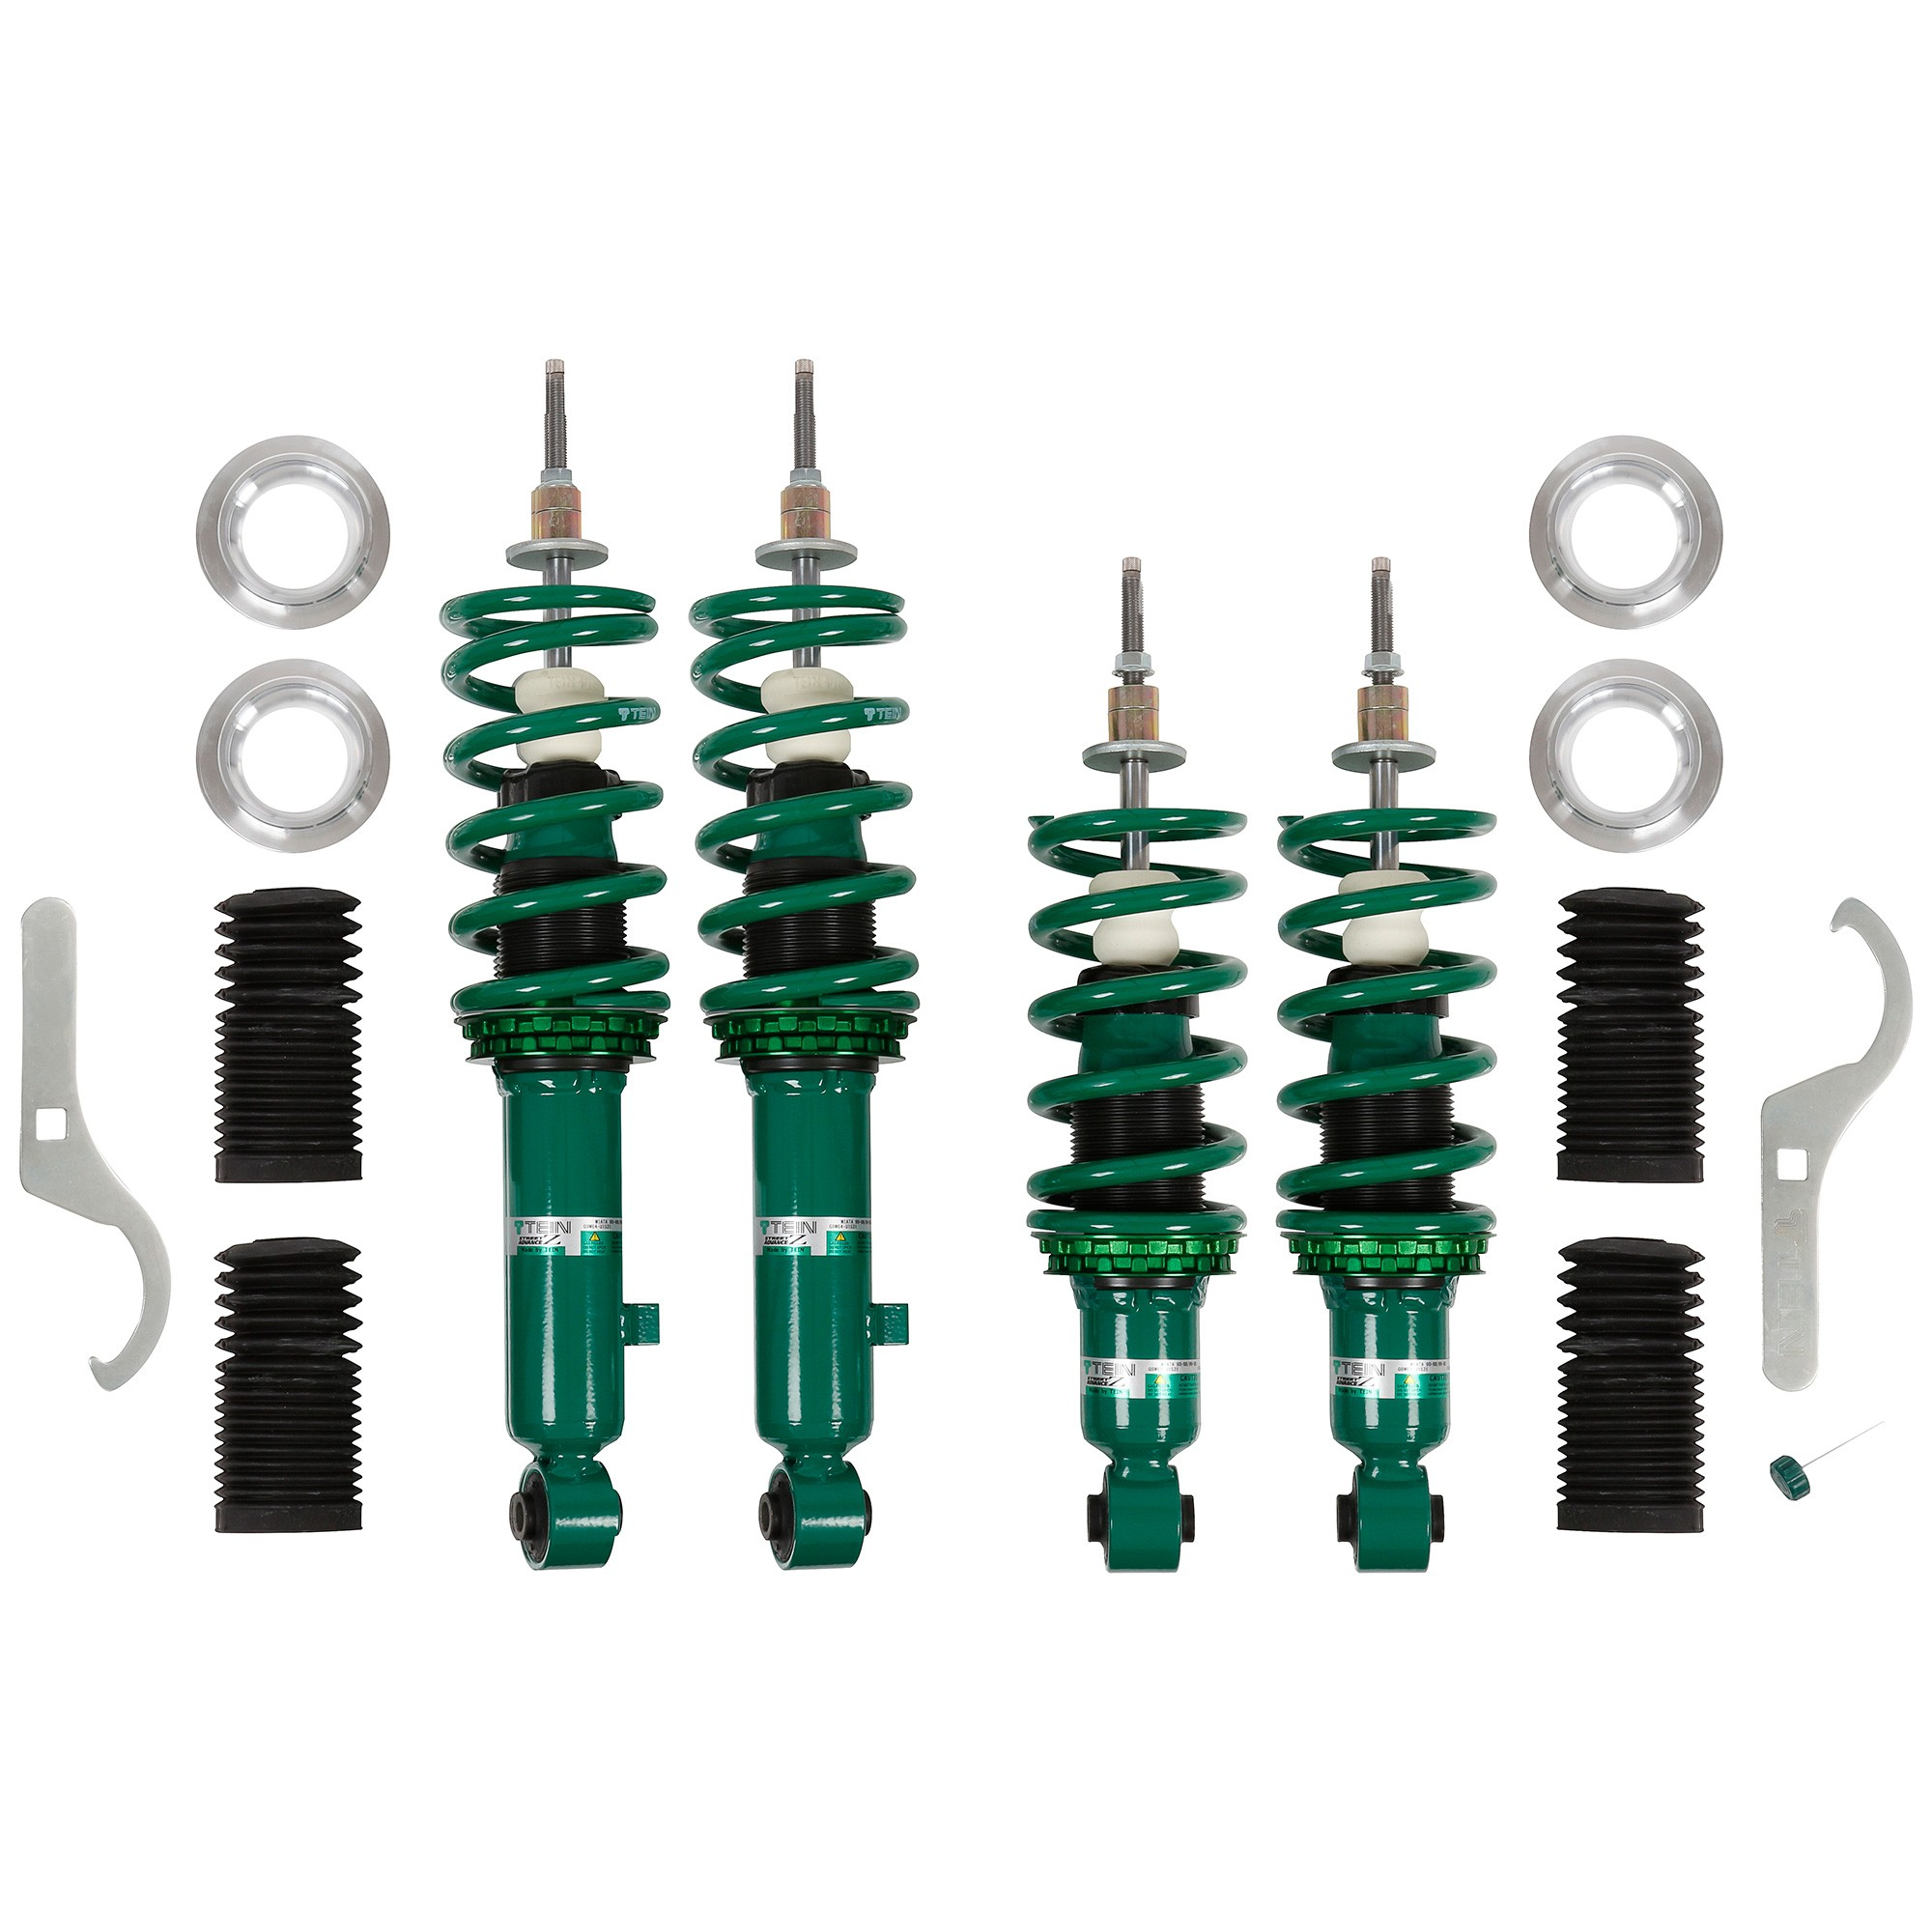 1997 Mazda Protege Suspension: 909-906 Street Advance-Z Coilover Kit By Tein